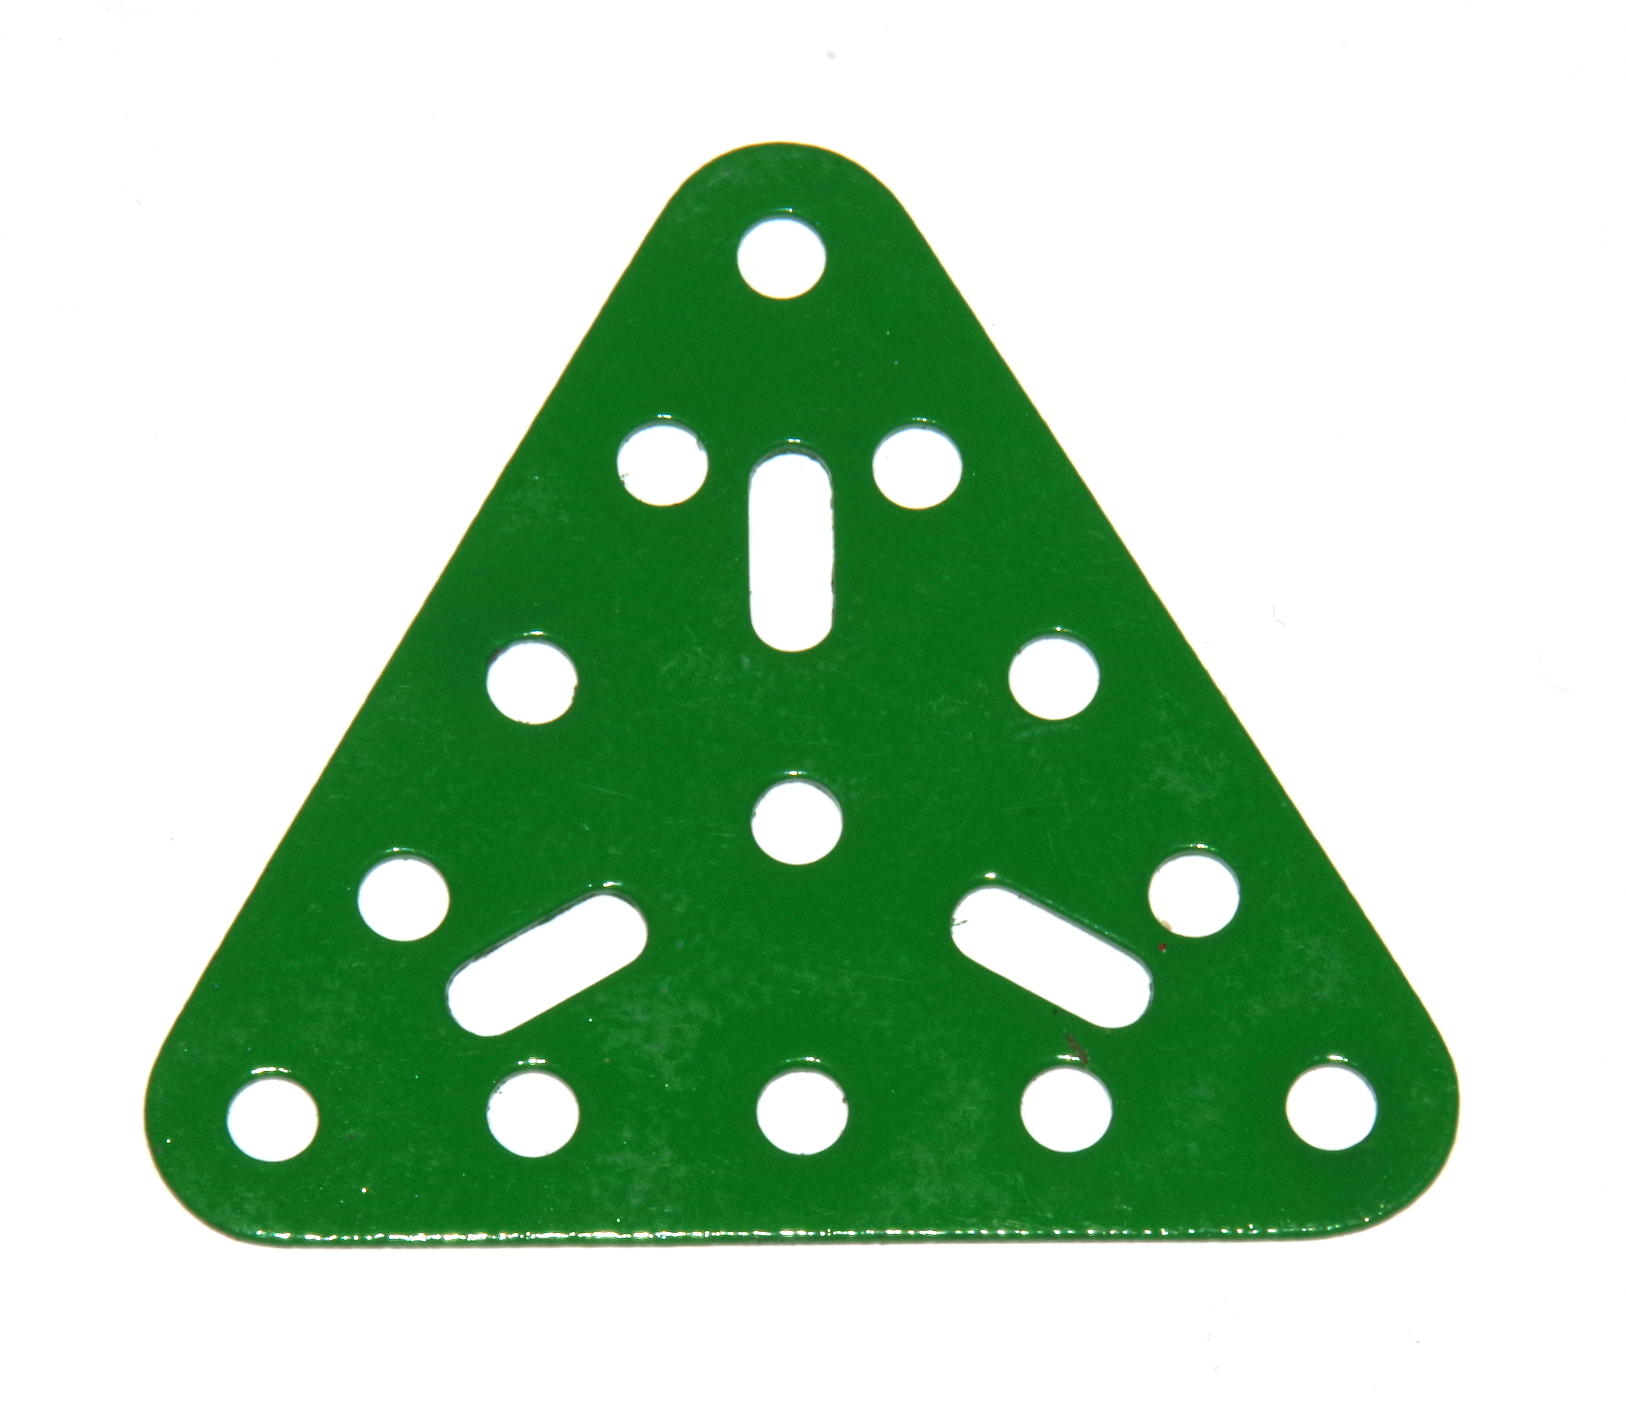 76 Triangular Plate 5x5x5 Hole Light Green